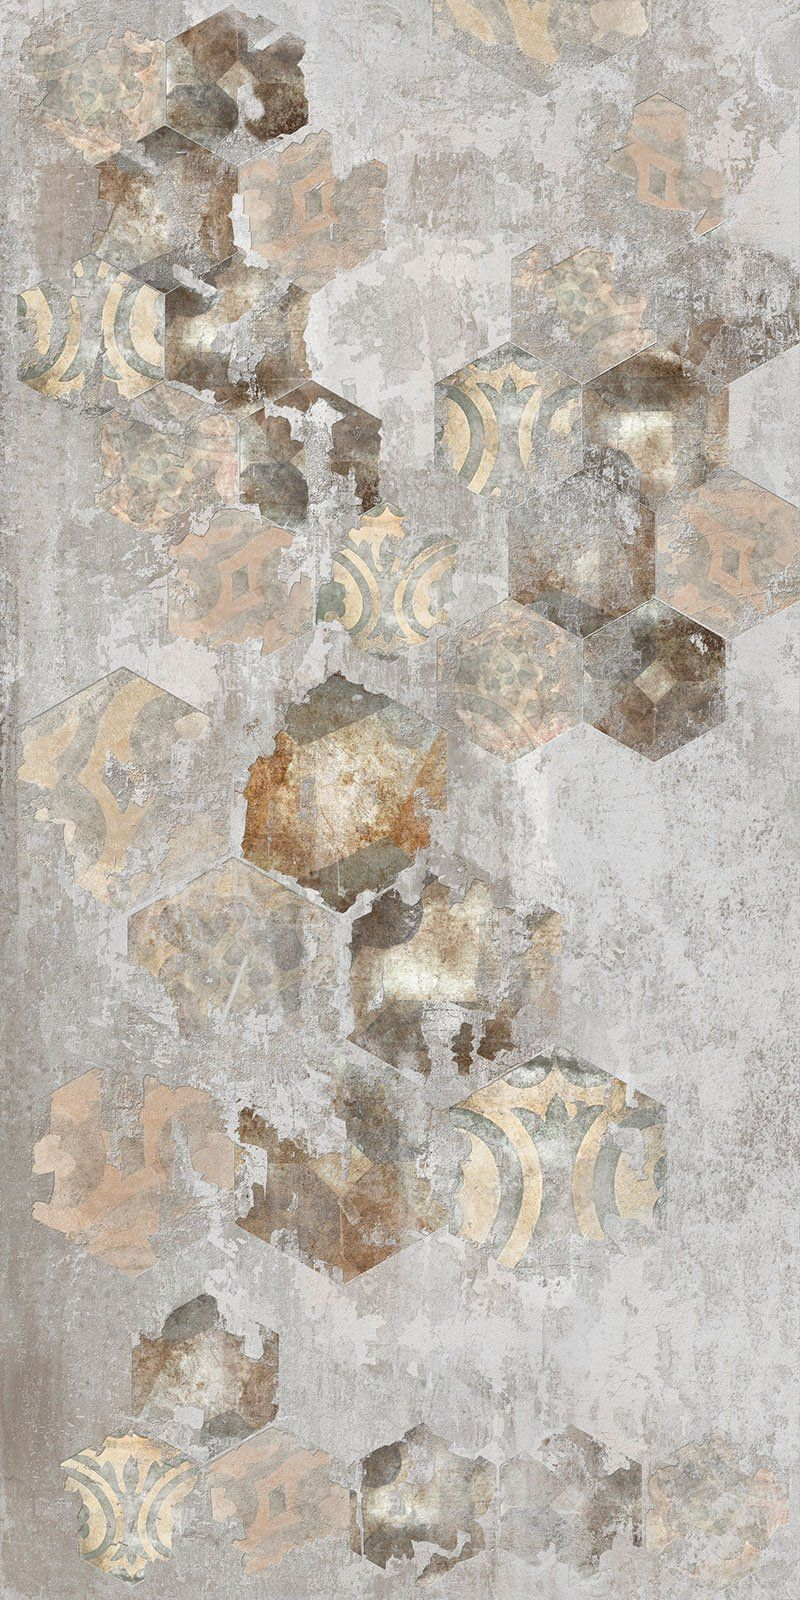 Privilege Colored Porcelain Wall Tiles Carta Da Parati Modelli Di Piastrelle Piastrelle